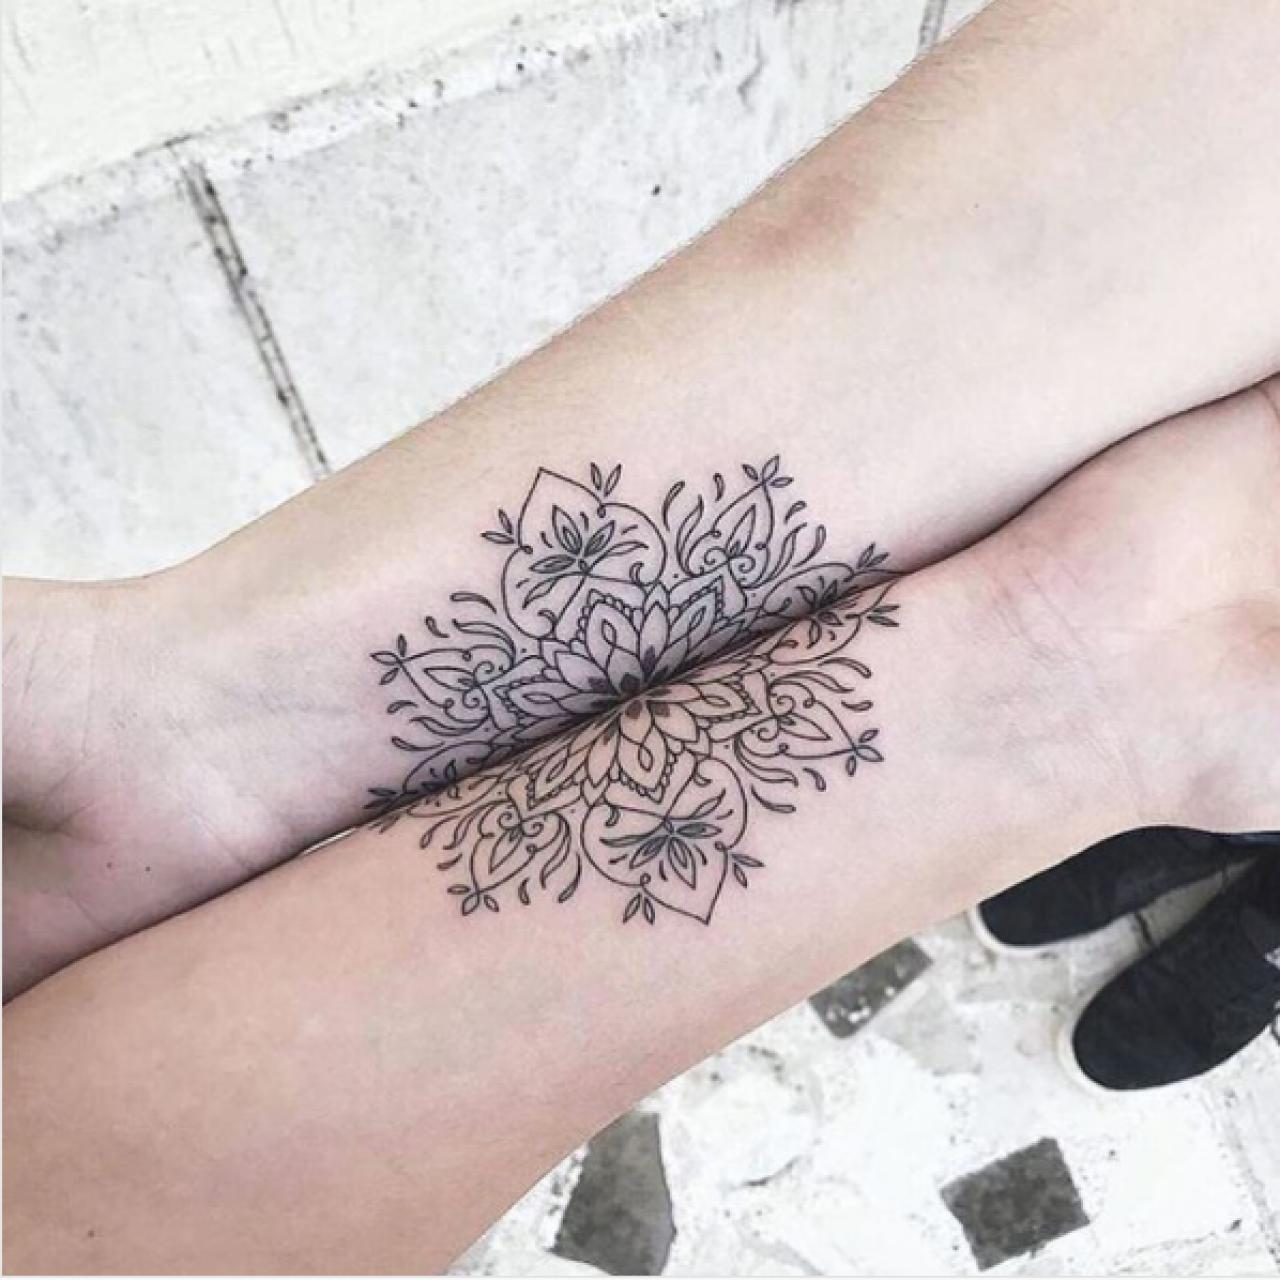 Girly Best Friend Tattoos: 5 Ideas For Best Friend Tattoos That Are Actually Awesome